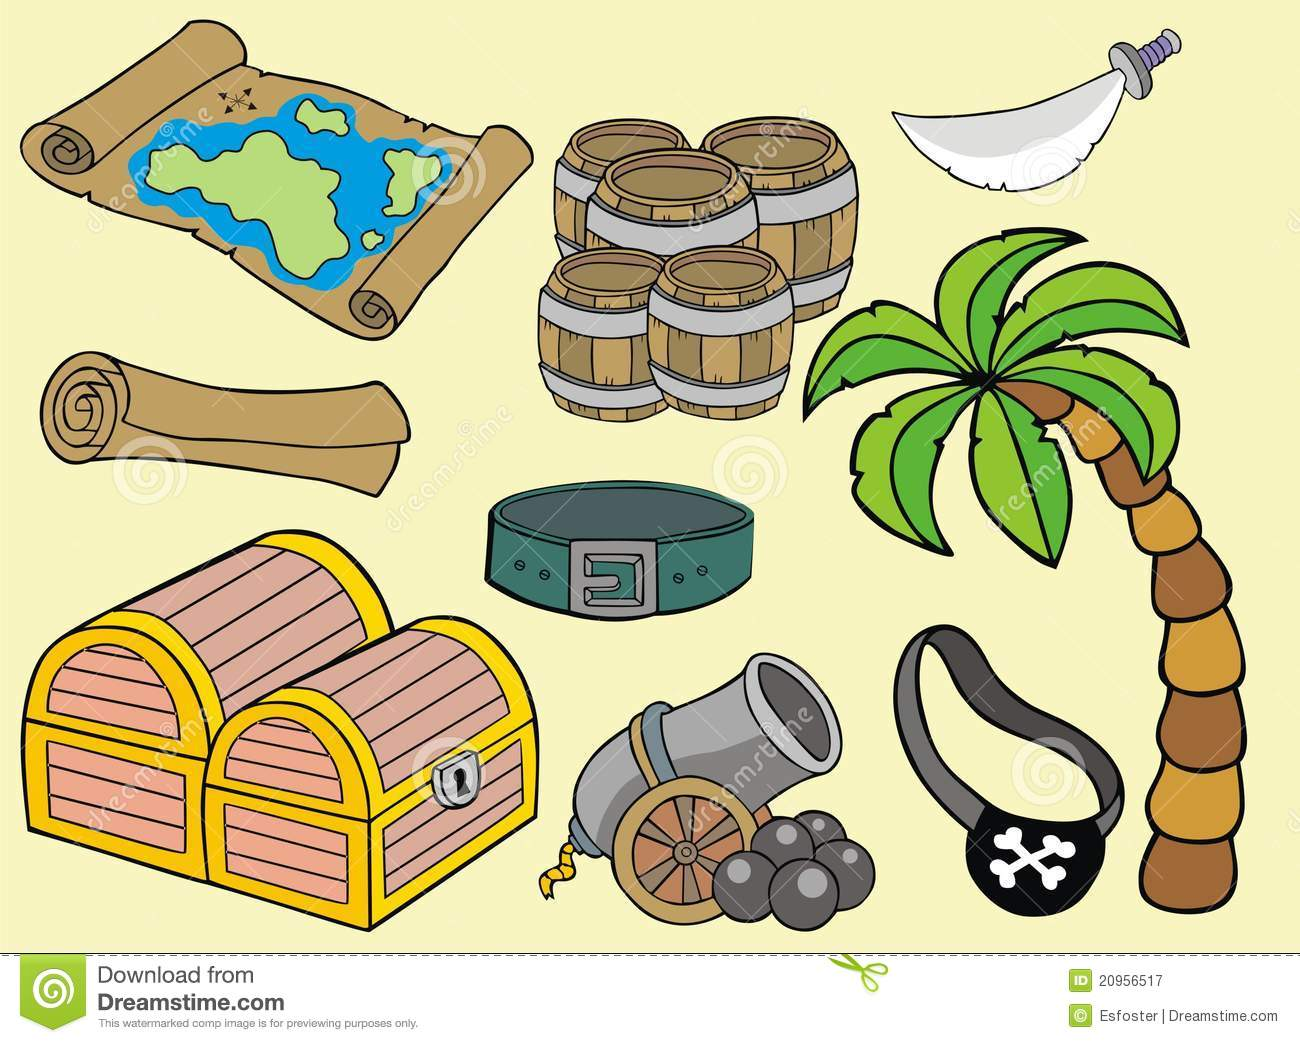 Objet pirates royalty free stock photography image 20956517